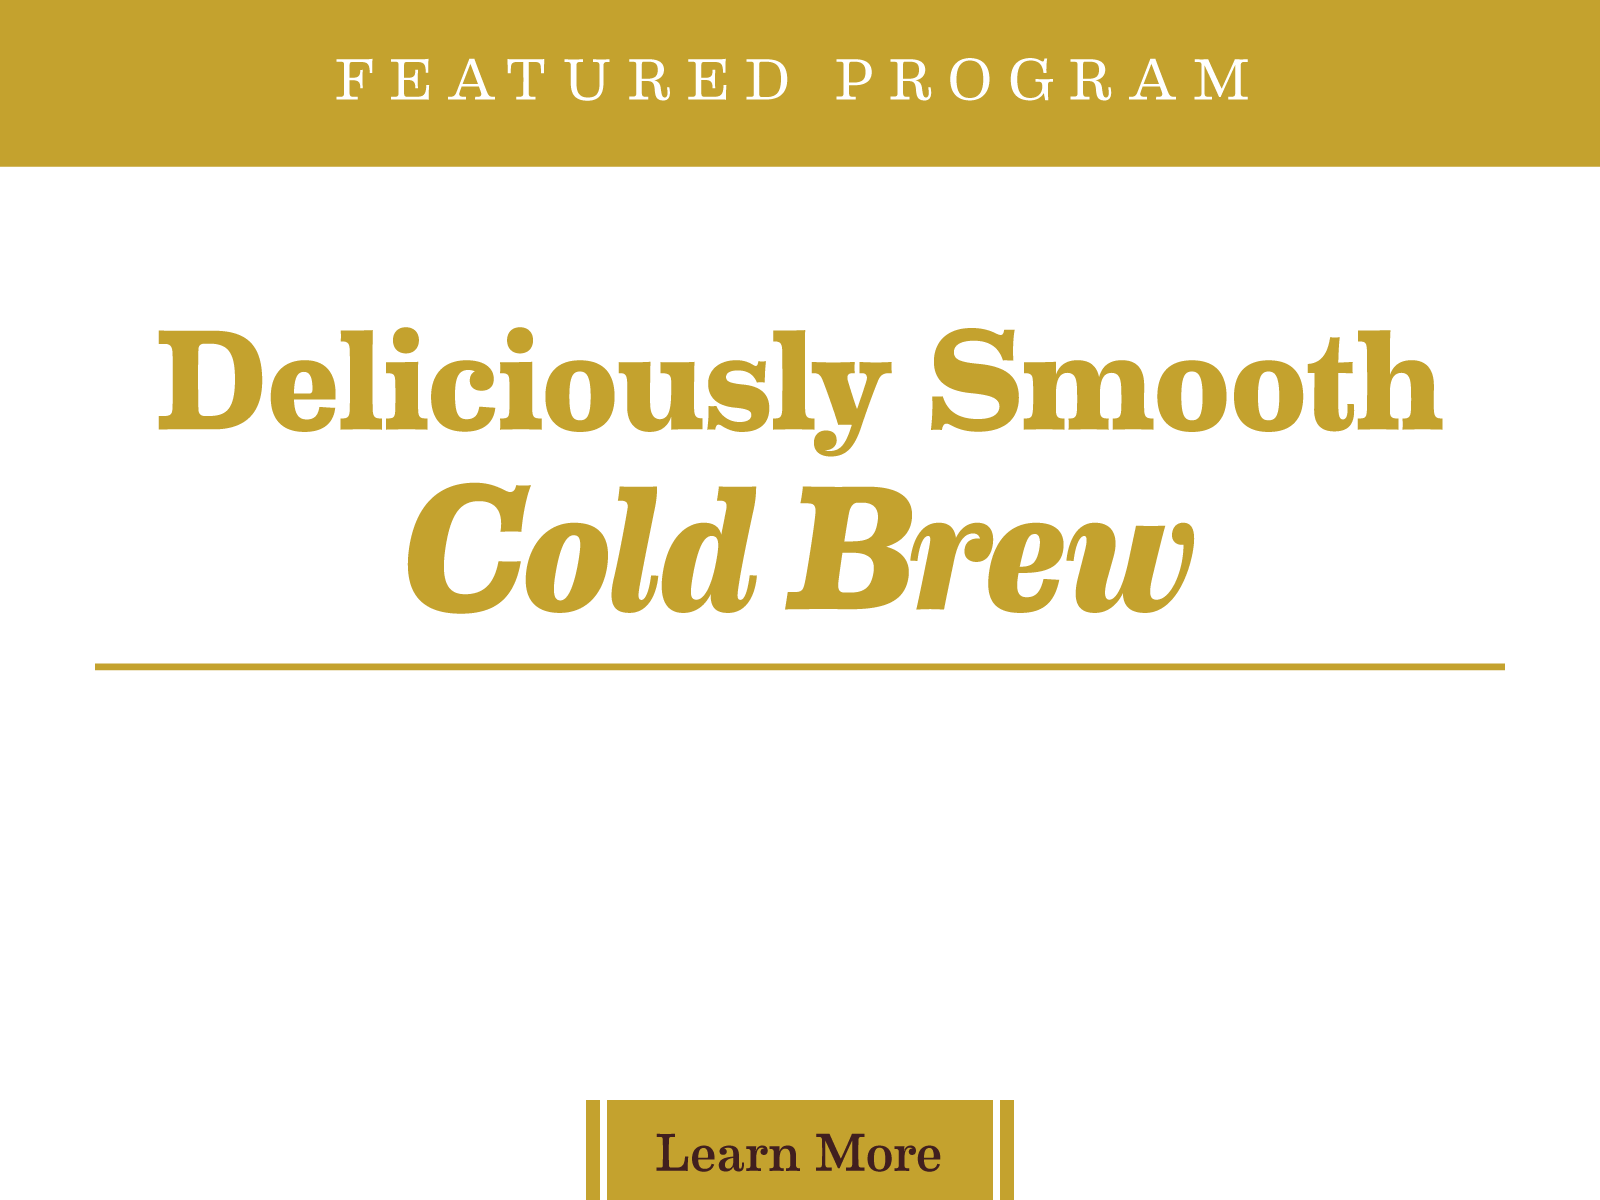 Deliciously Smooth Cold Brew